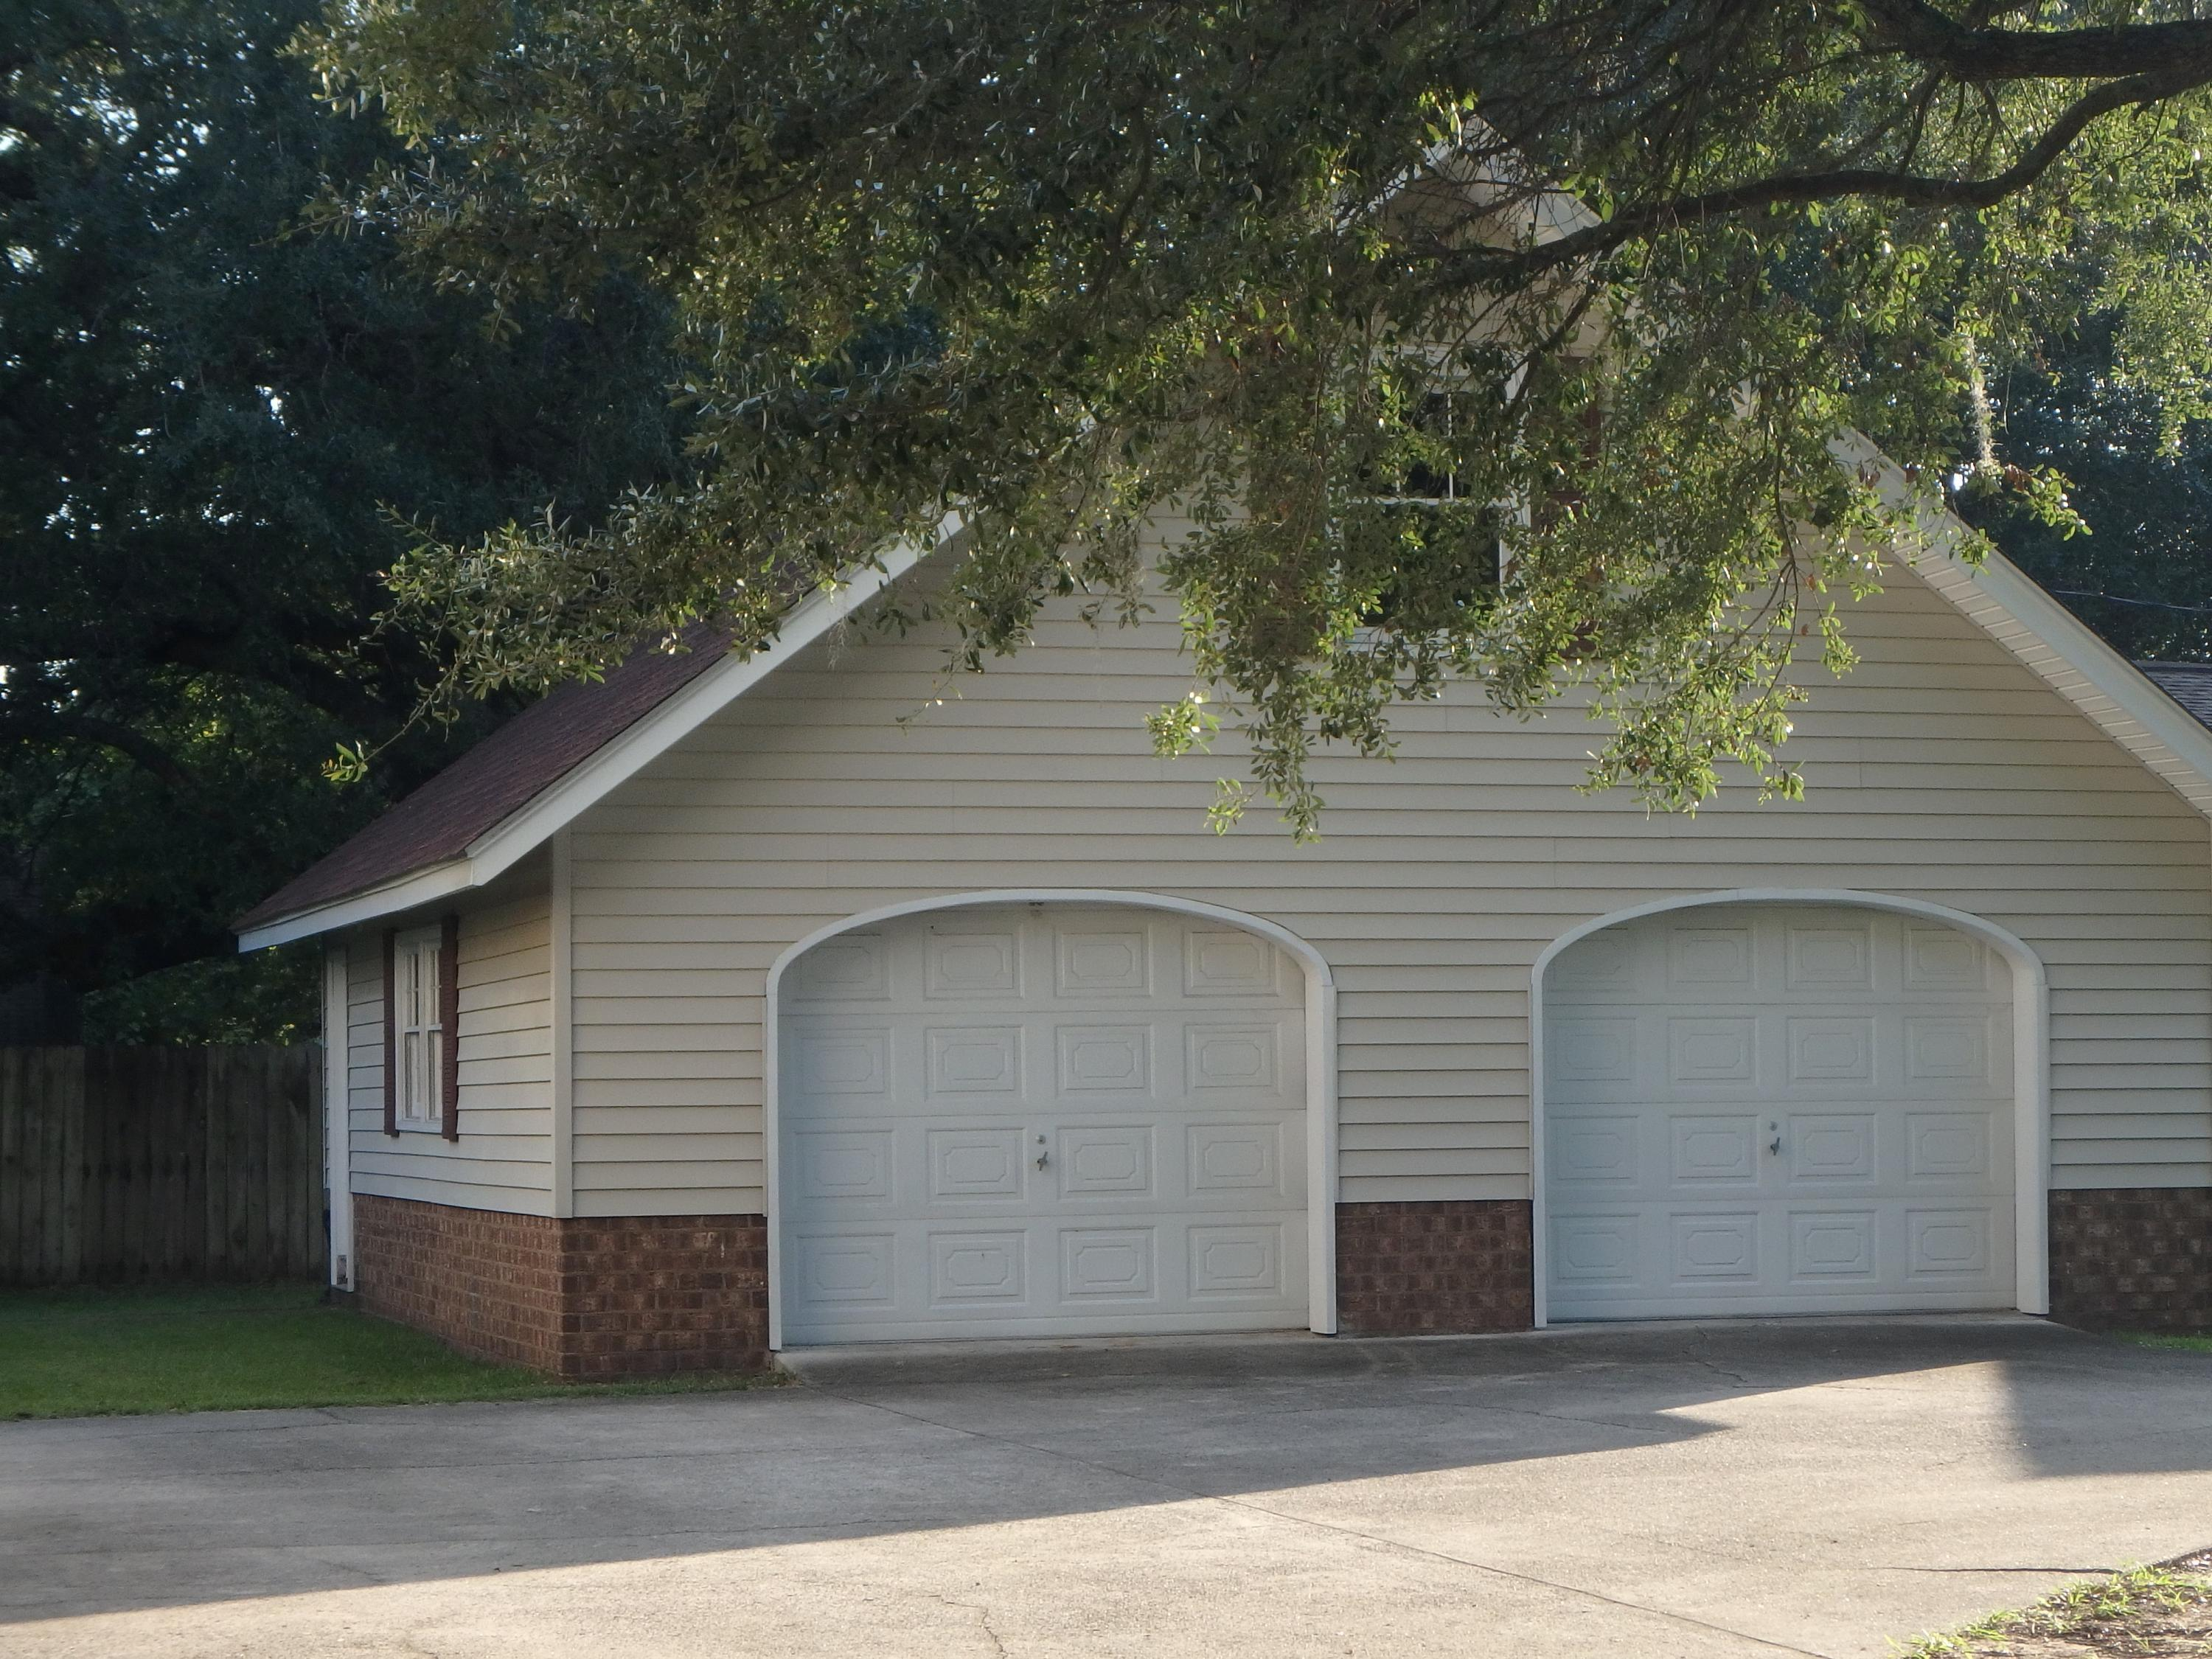 Photo of 117 The Oaks Ave, Goose Creek, SC 29445